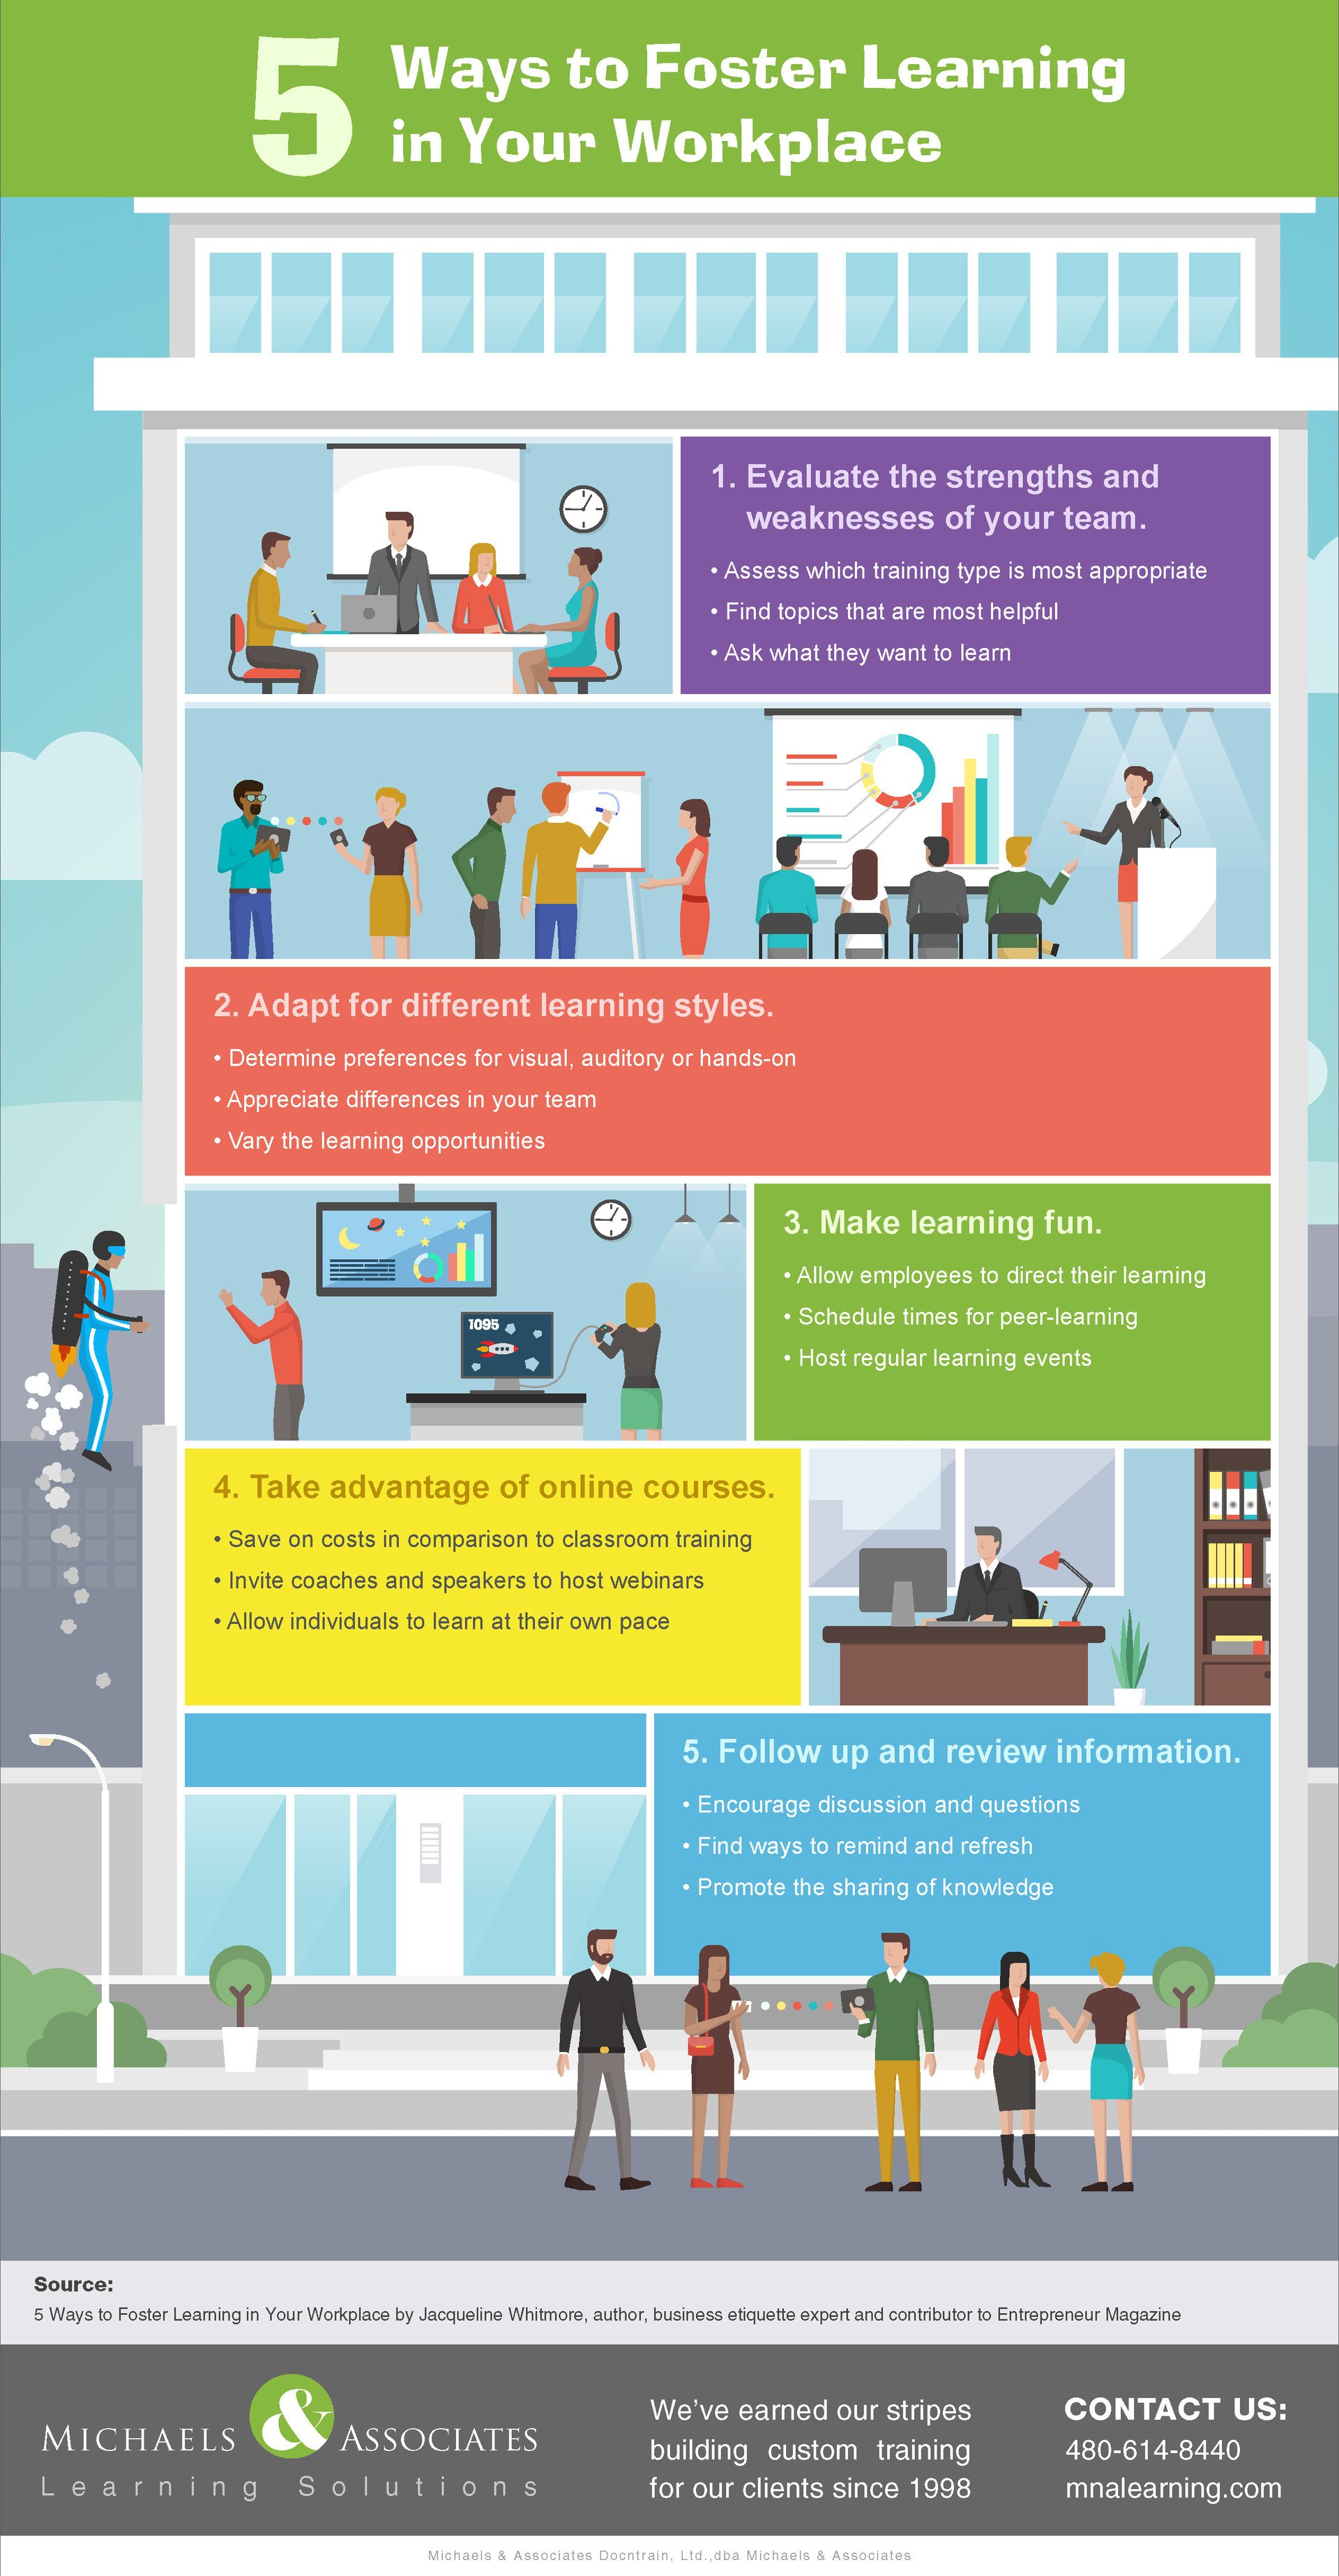 5 ways to foster learning in your workplace infographic e 5 ways to foster learning in your workplace infographic